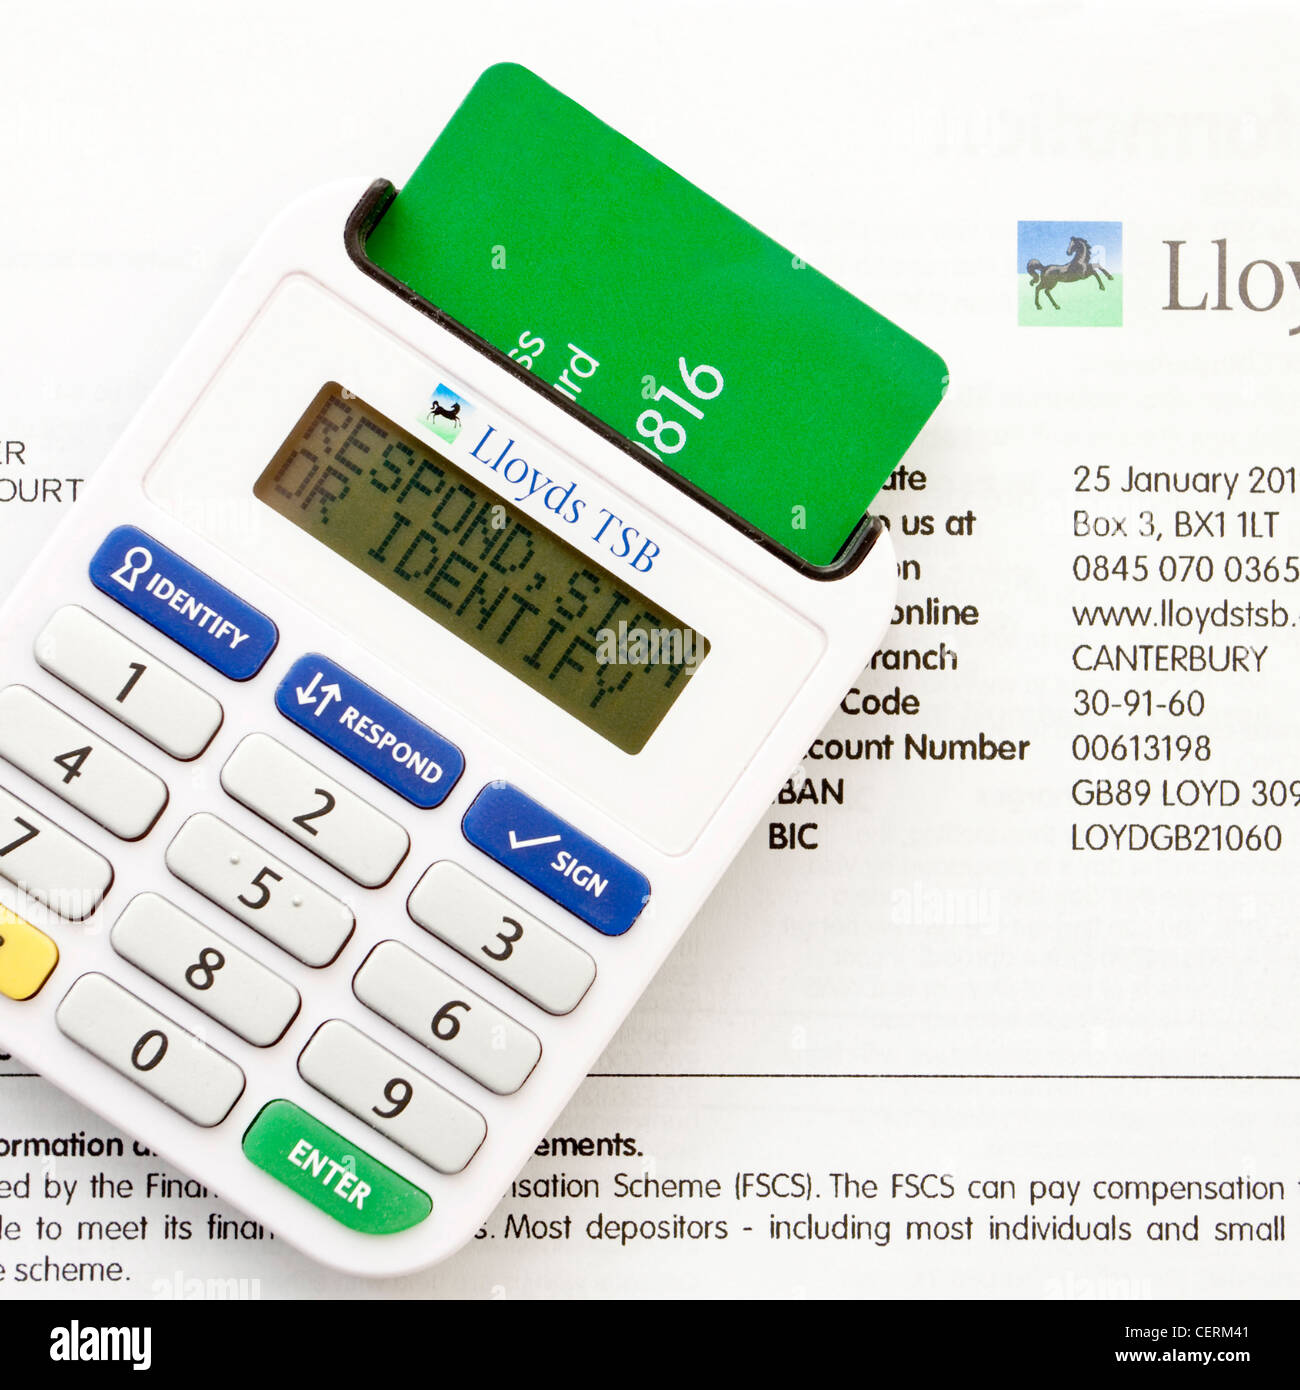 Lloyds bank card stock photos lloyds bank card stock images alamy lloyds bank security card reader business accounts stock image magicingreecefo Image collections